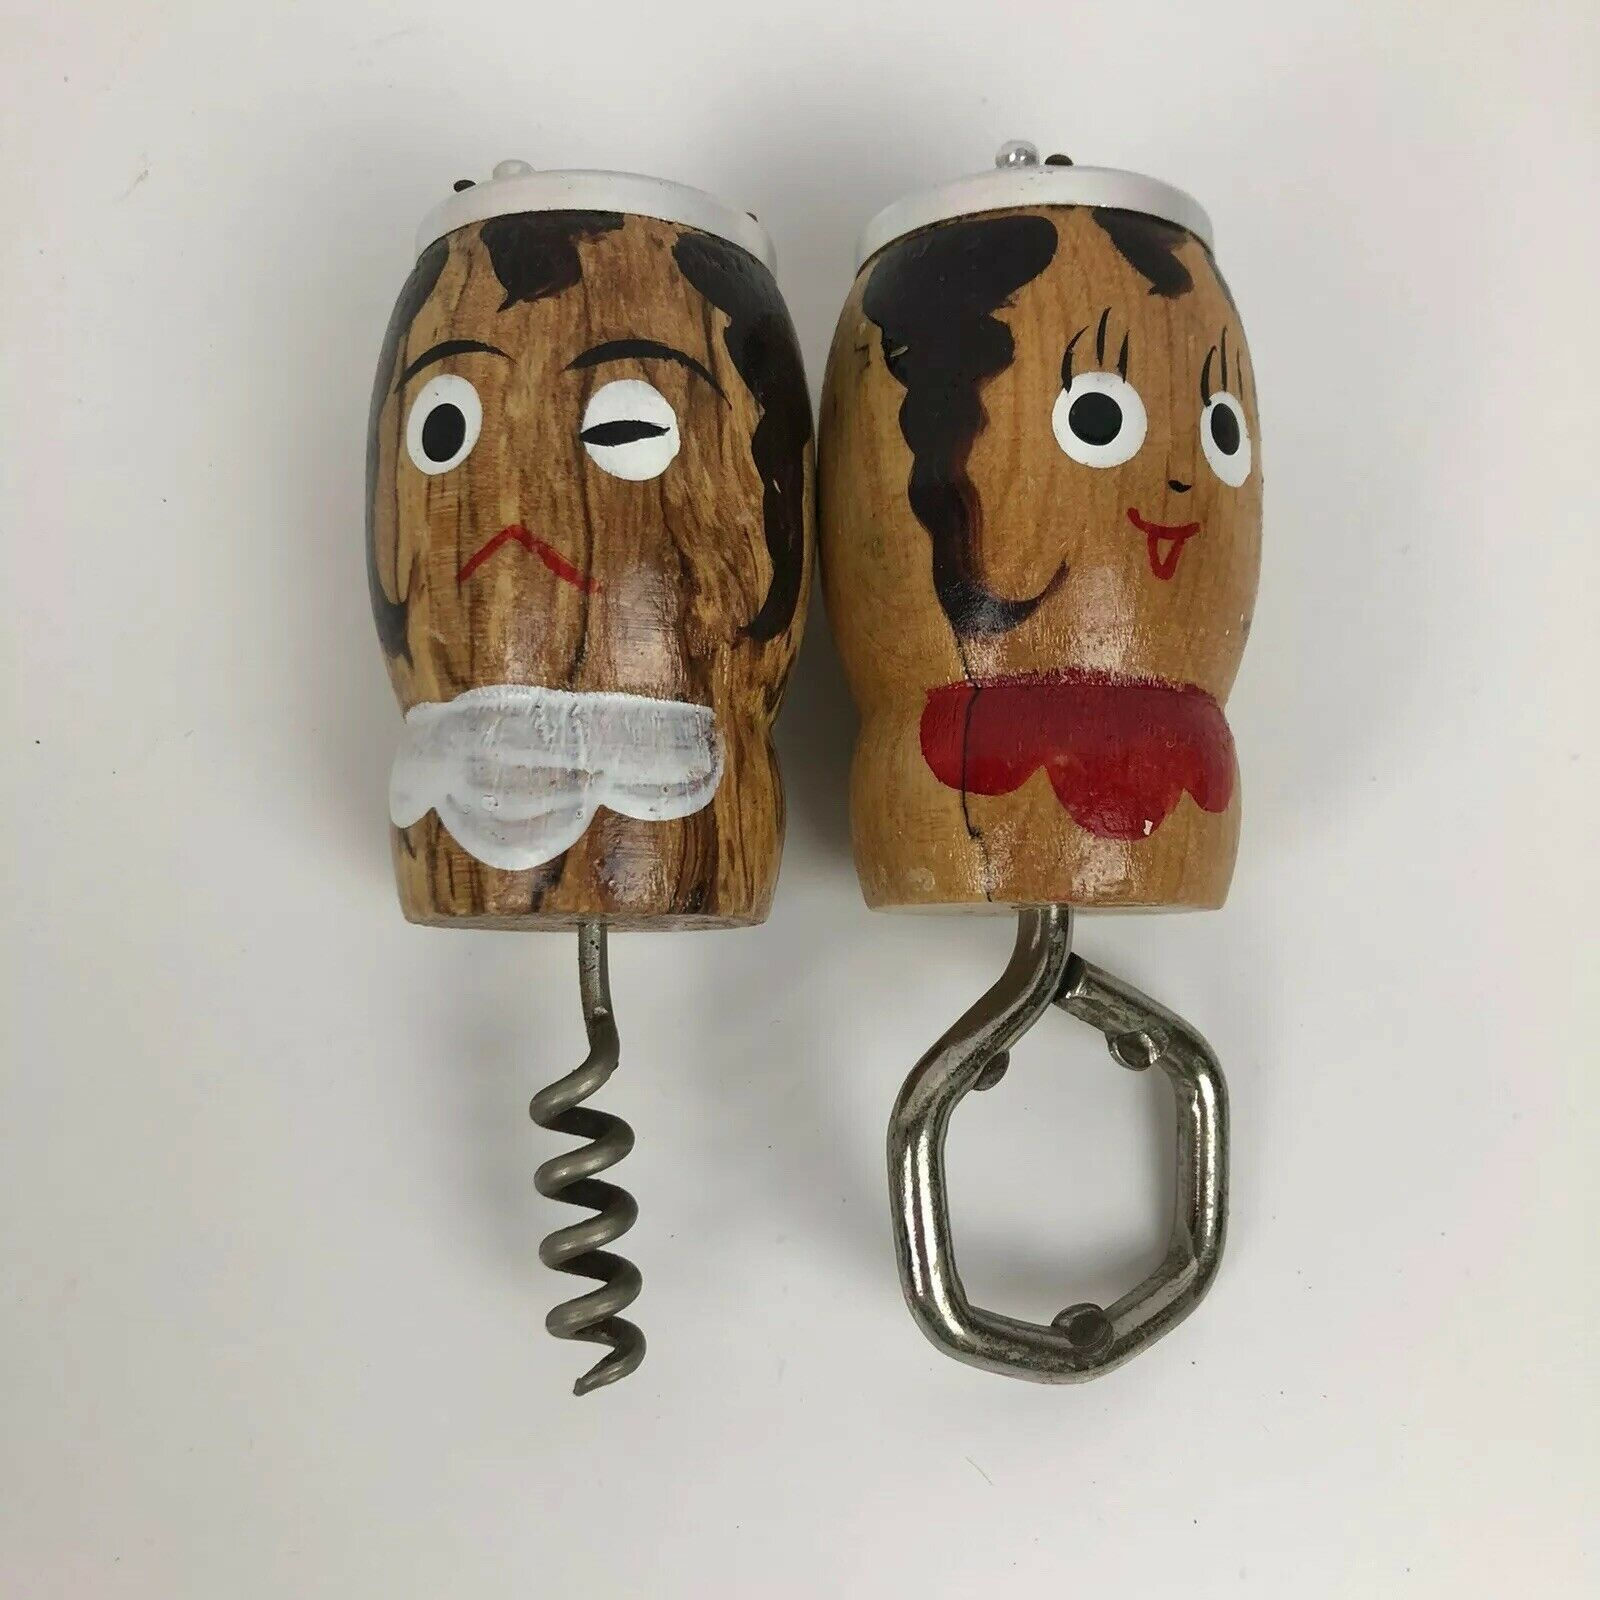 Primary image for VTG Wood Barware Man Woman Figurine Bottle Opener & Corkscrew Salt Pepper Shaker